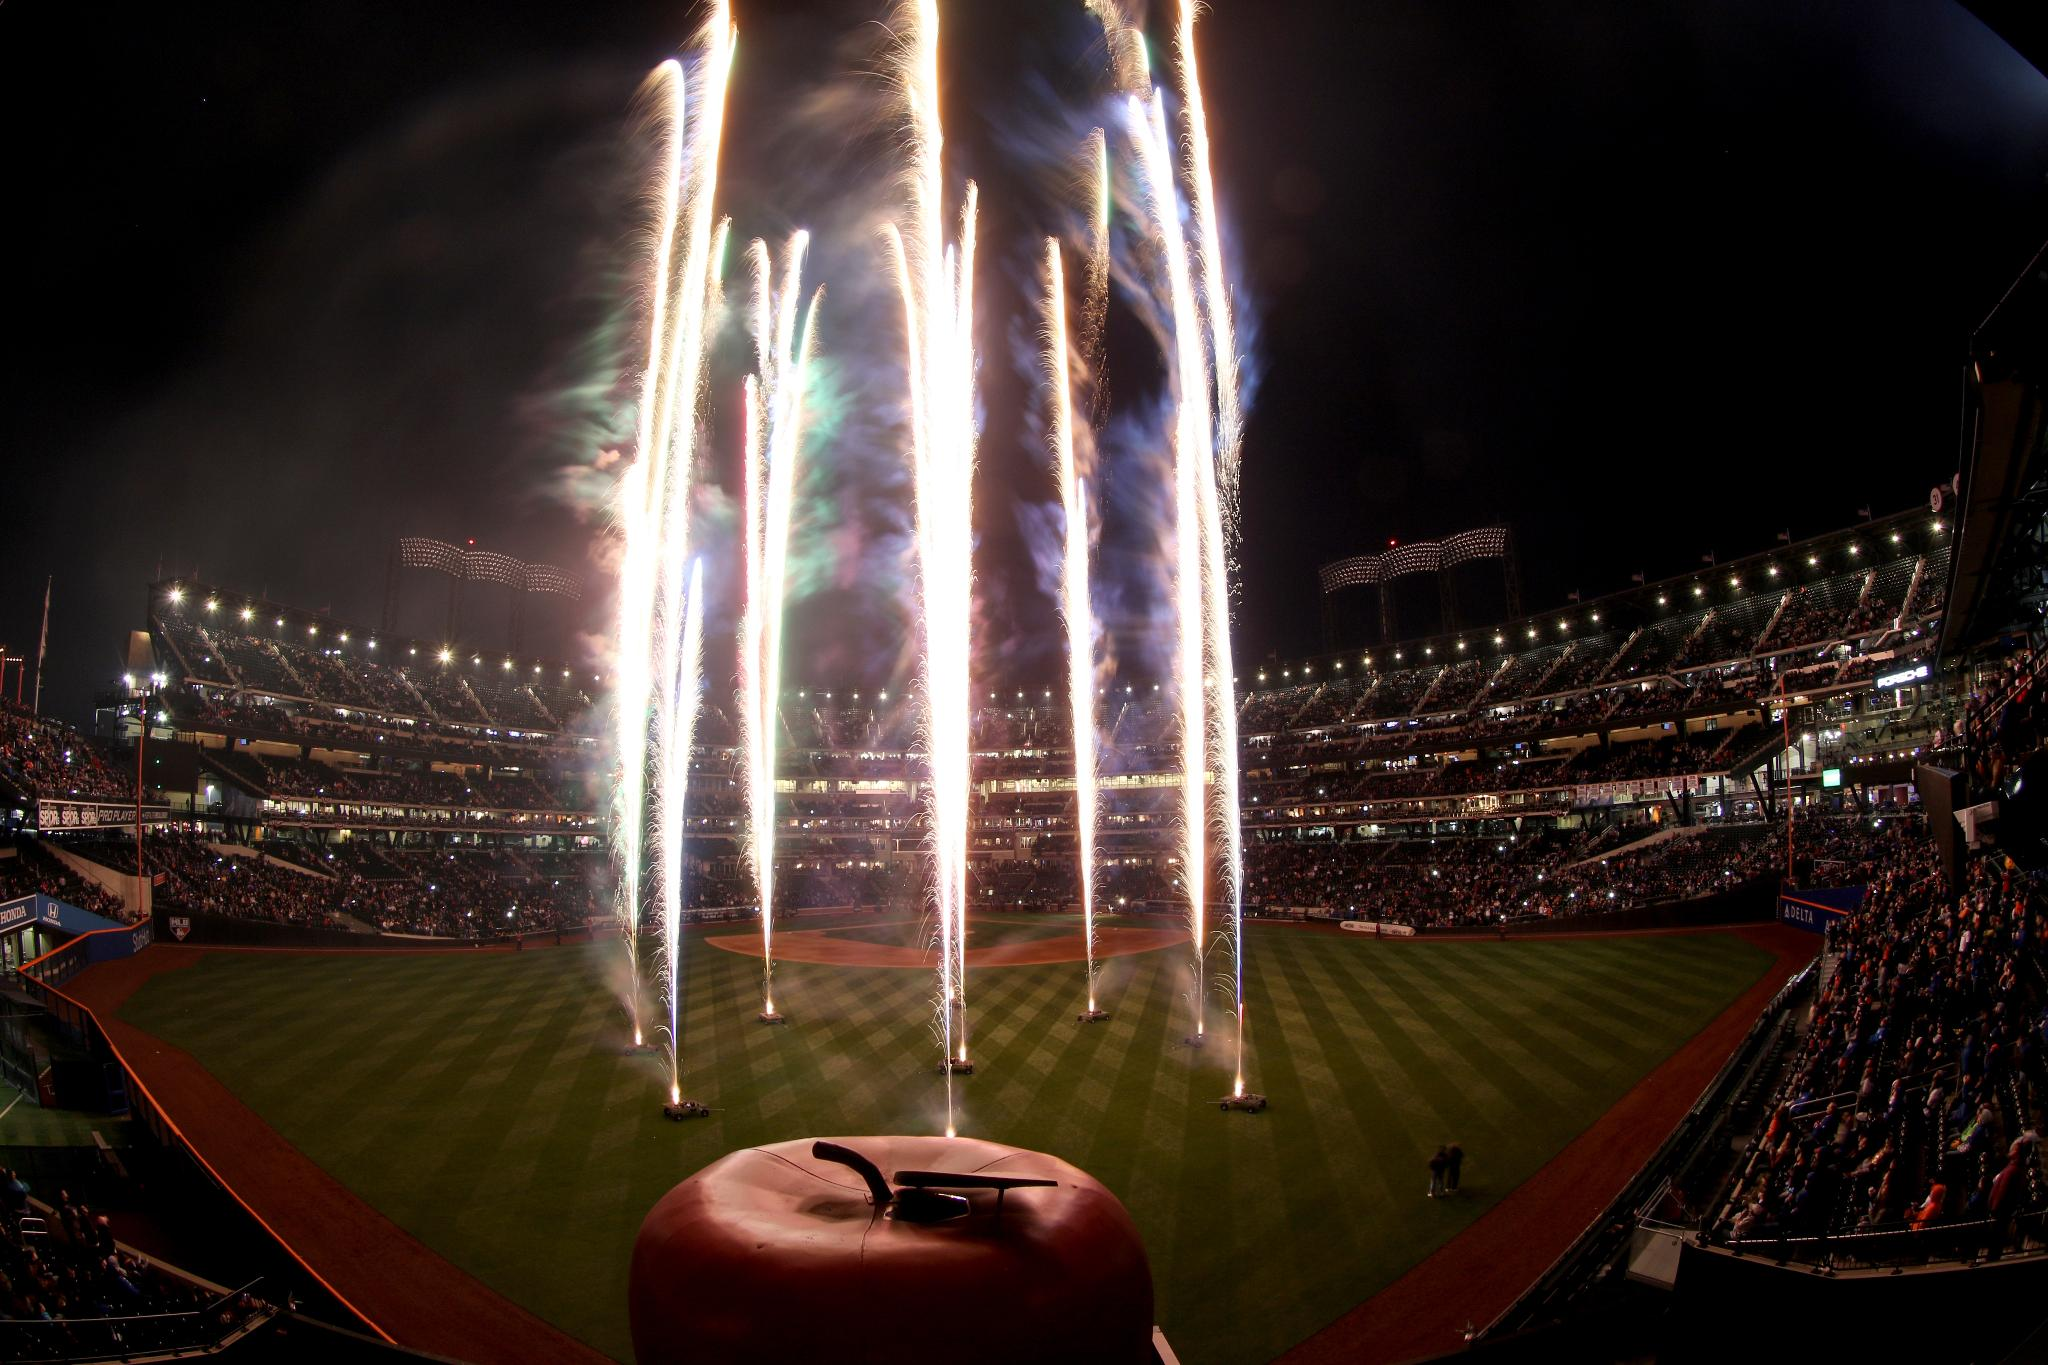 Fireworks Night - Sept. 23